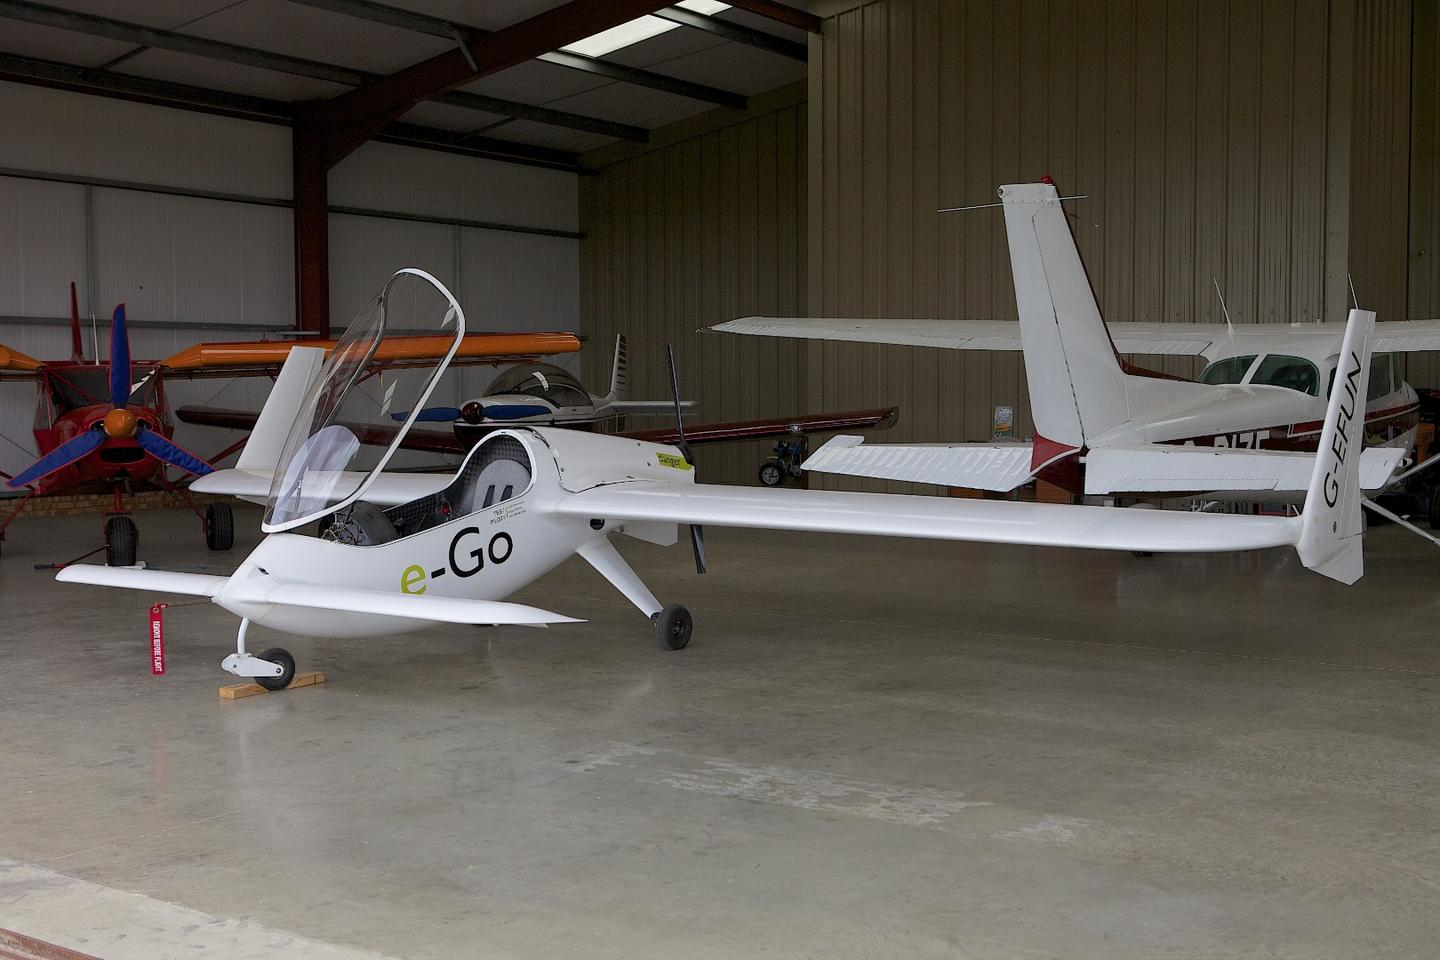 The e-Go aircraft is made of pre-preg carbon fiber, with foam in the wings